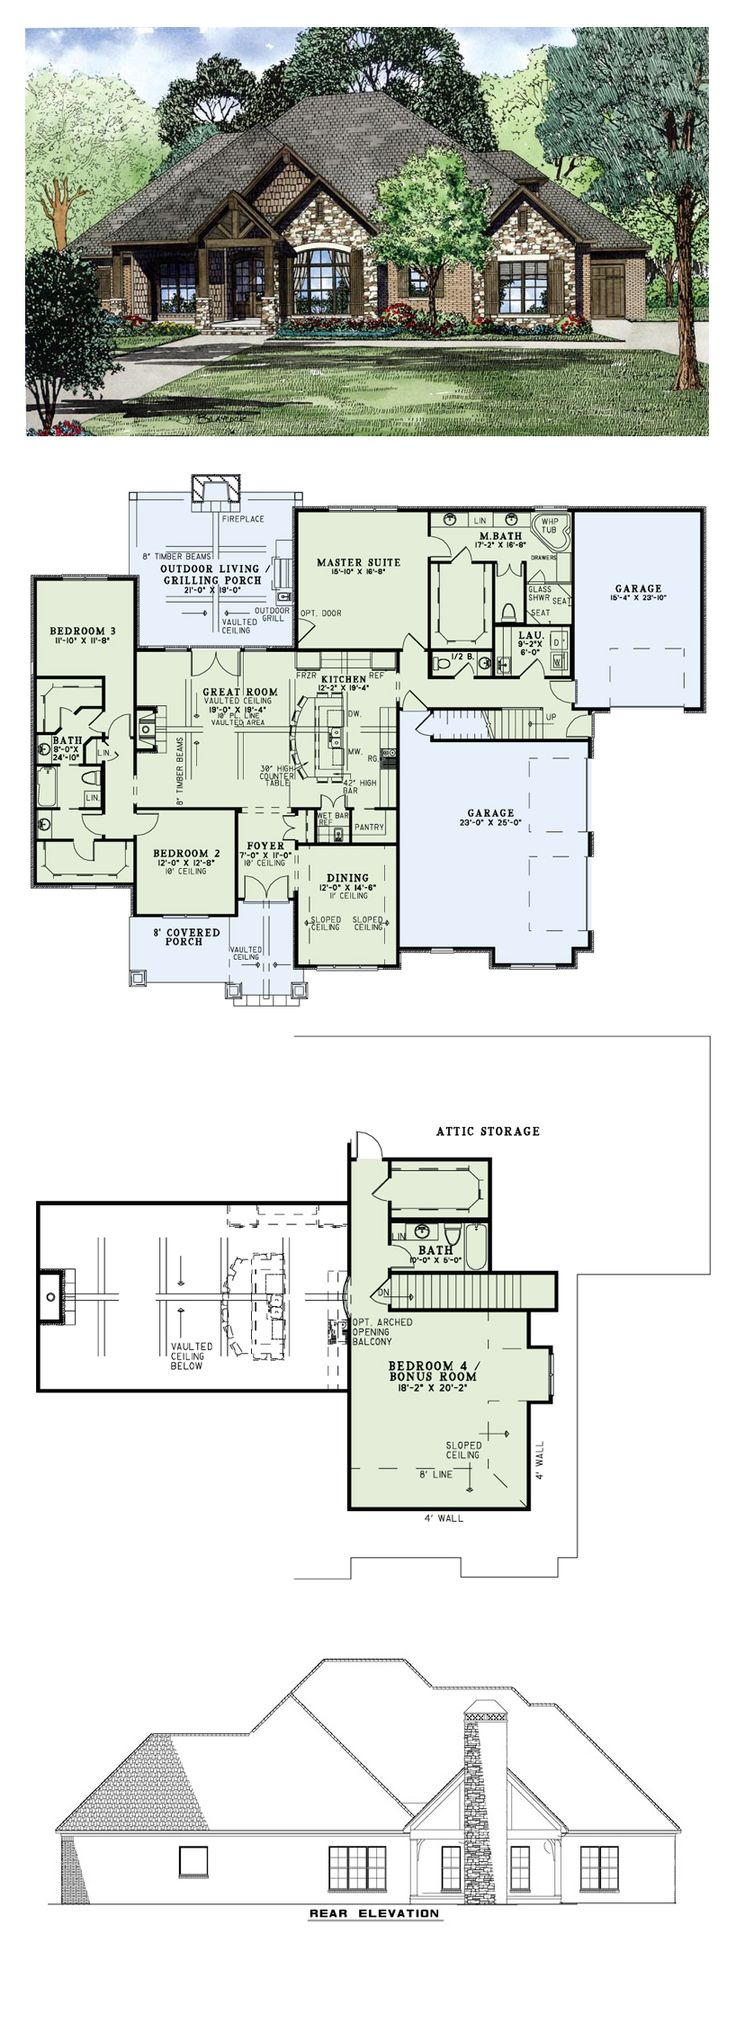 42 best images about best selling home plans on pinterest for Best selling floor plans